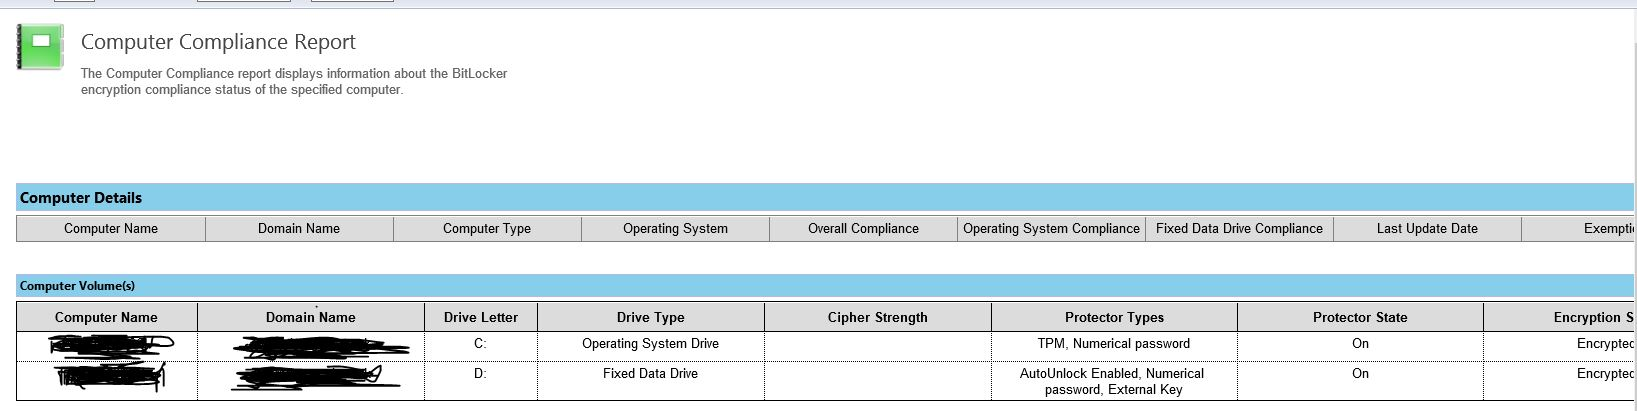 MBAM SCCM integrated Compliance reports show nothing